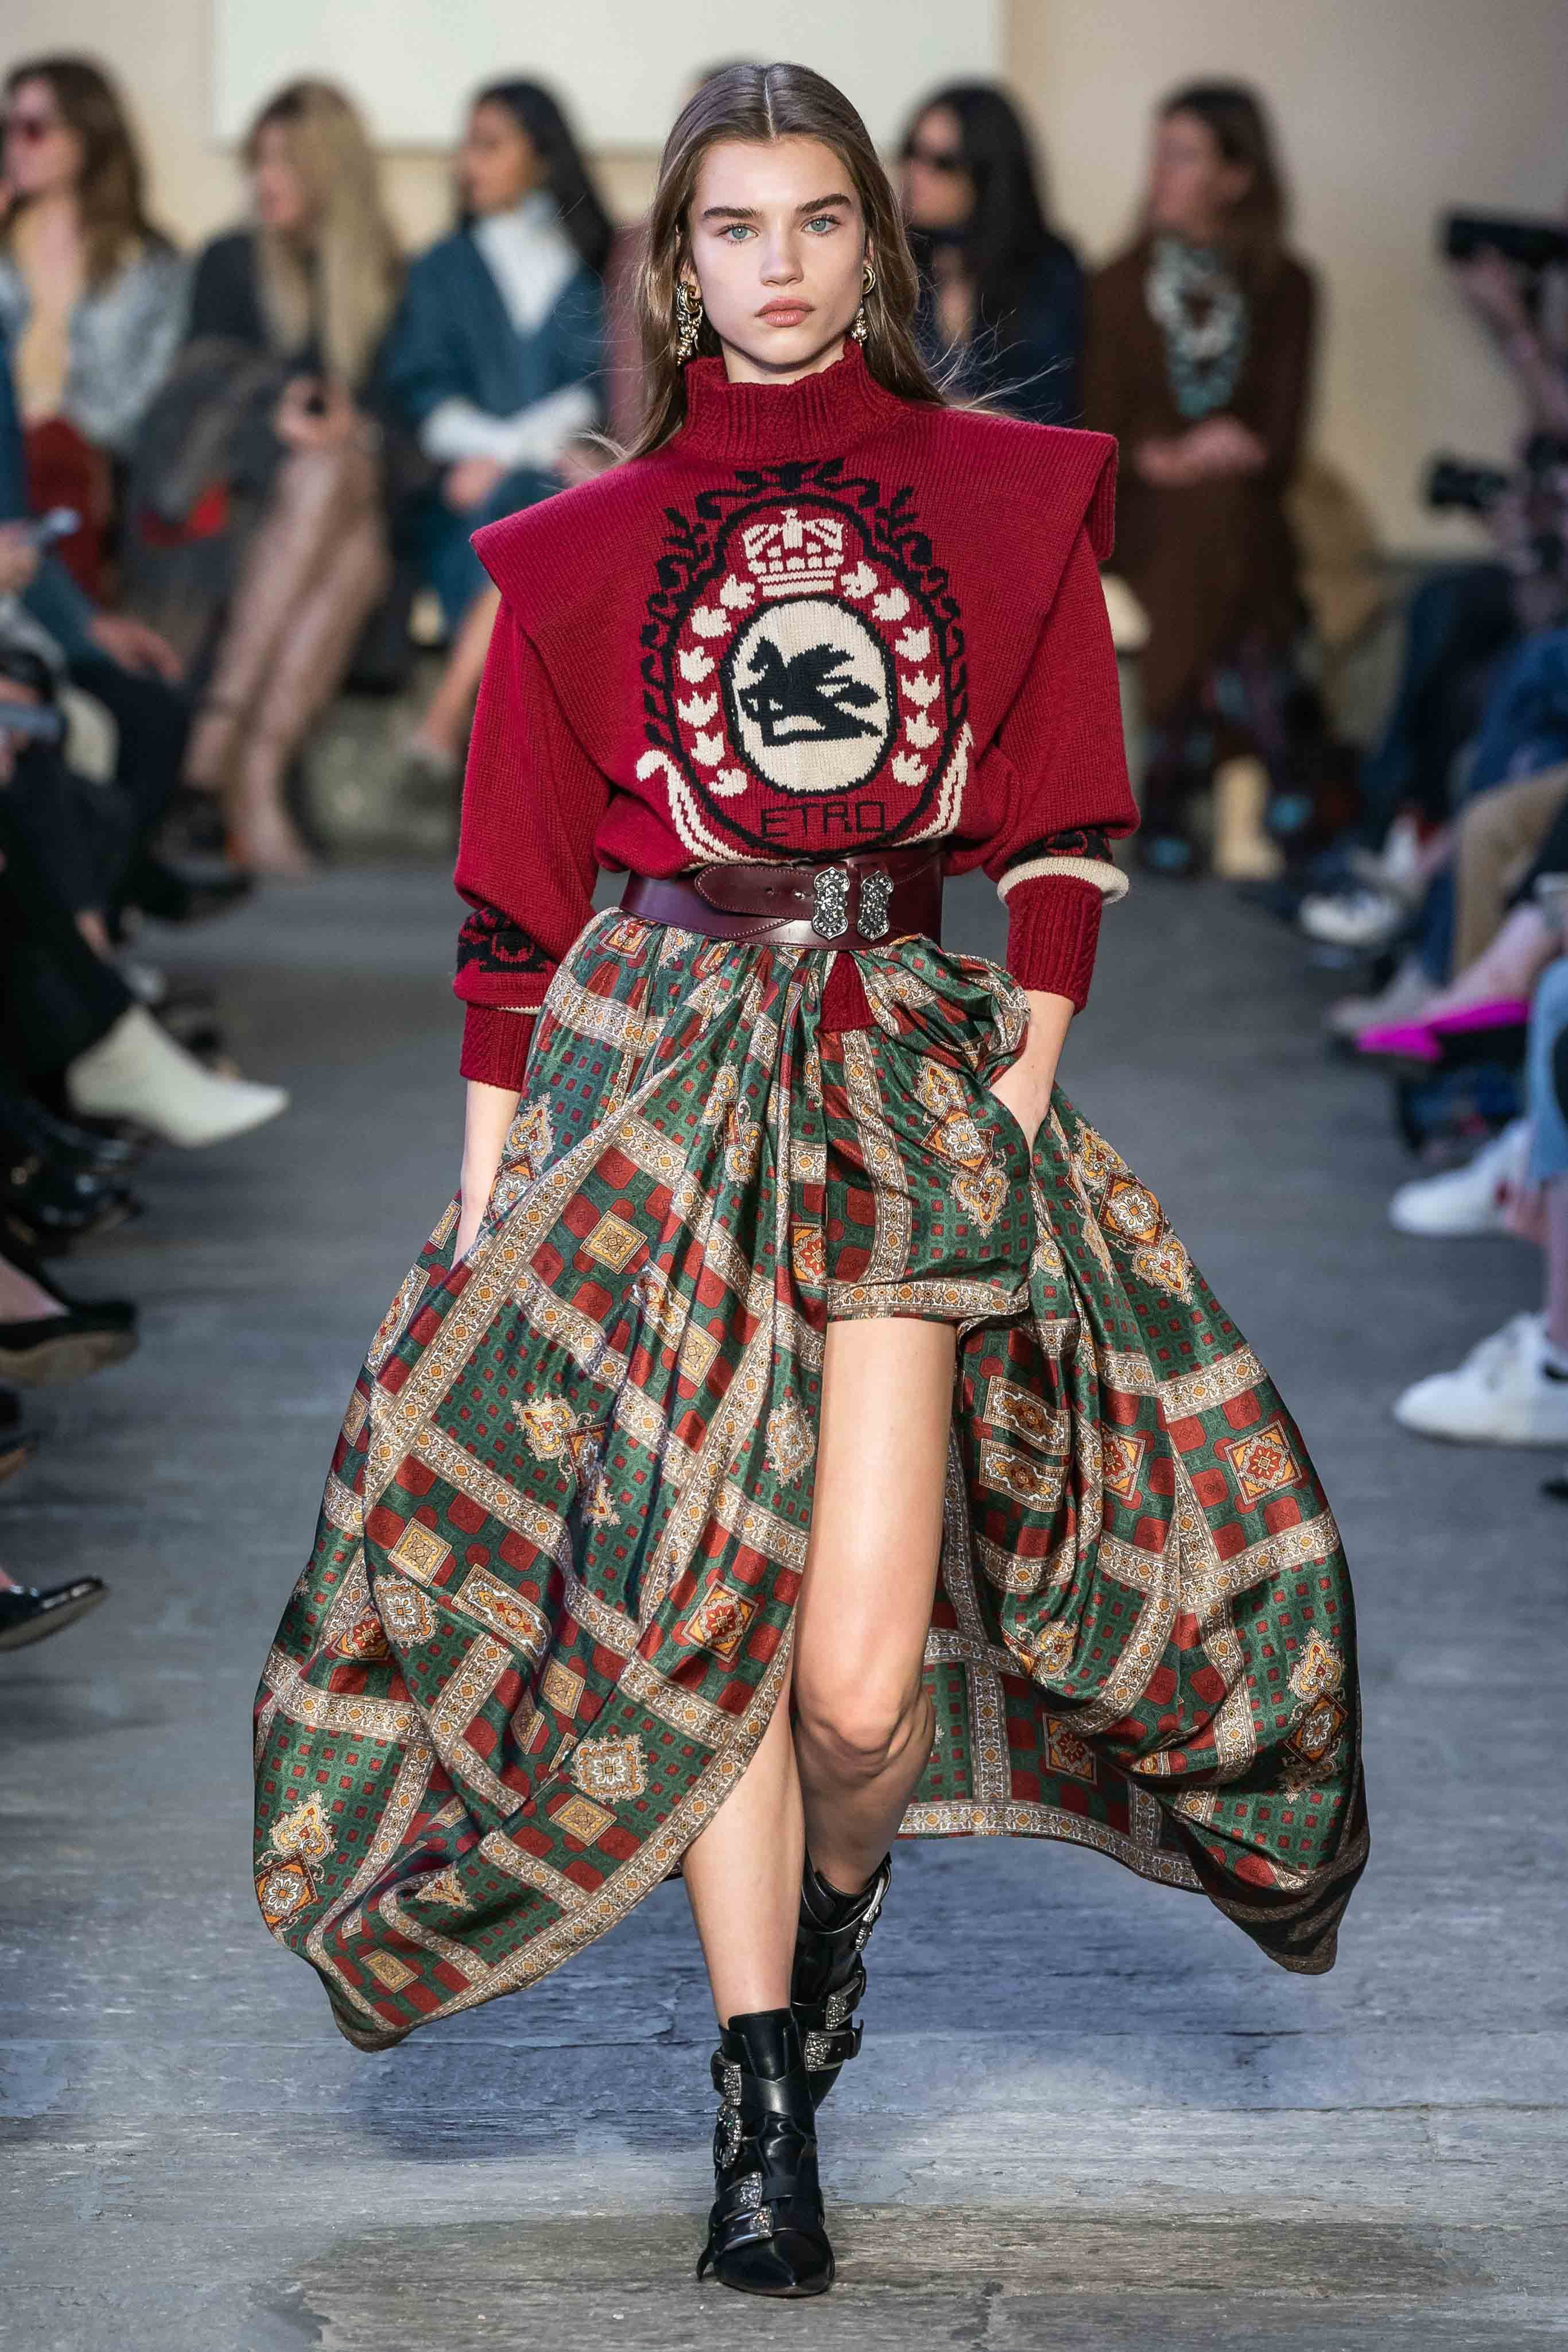 Fall Winter 2019 2020 Trends - Fashion Week Coverage ...